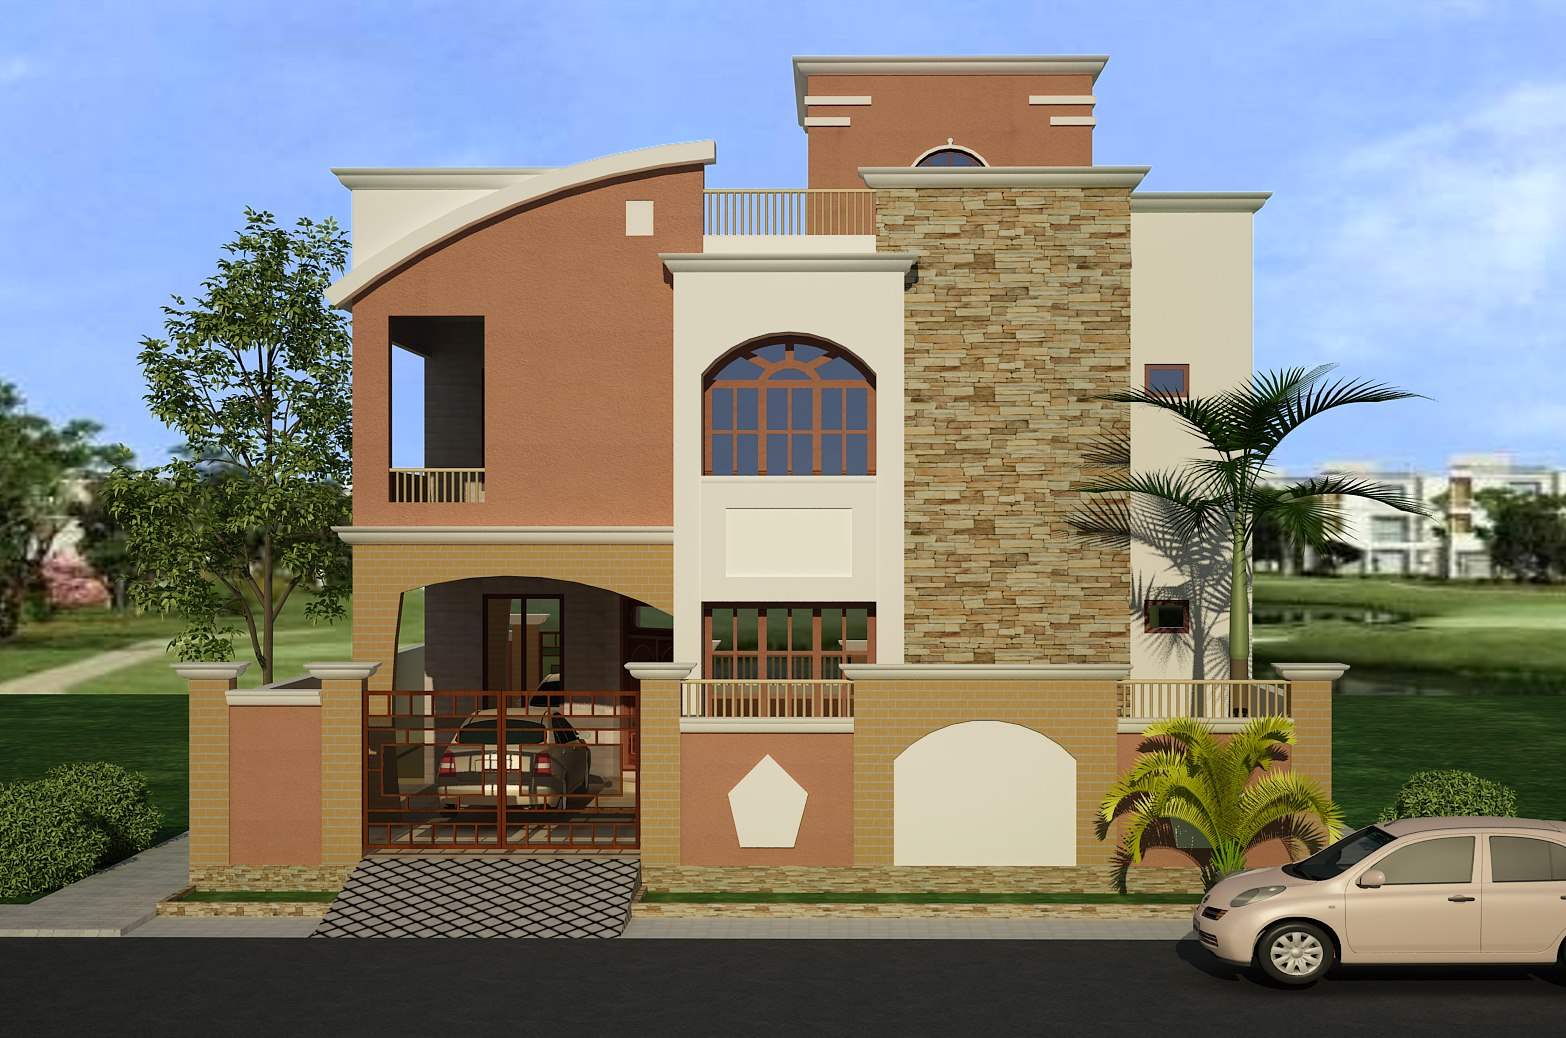 3d front 2 kanal corner plot beautiful modern house design in rawalpindi pakistan - D home design front elevation ...